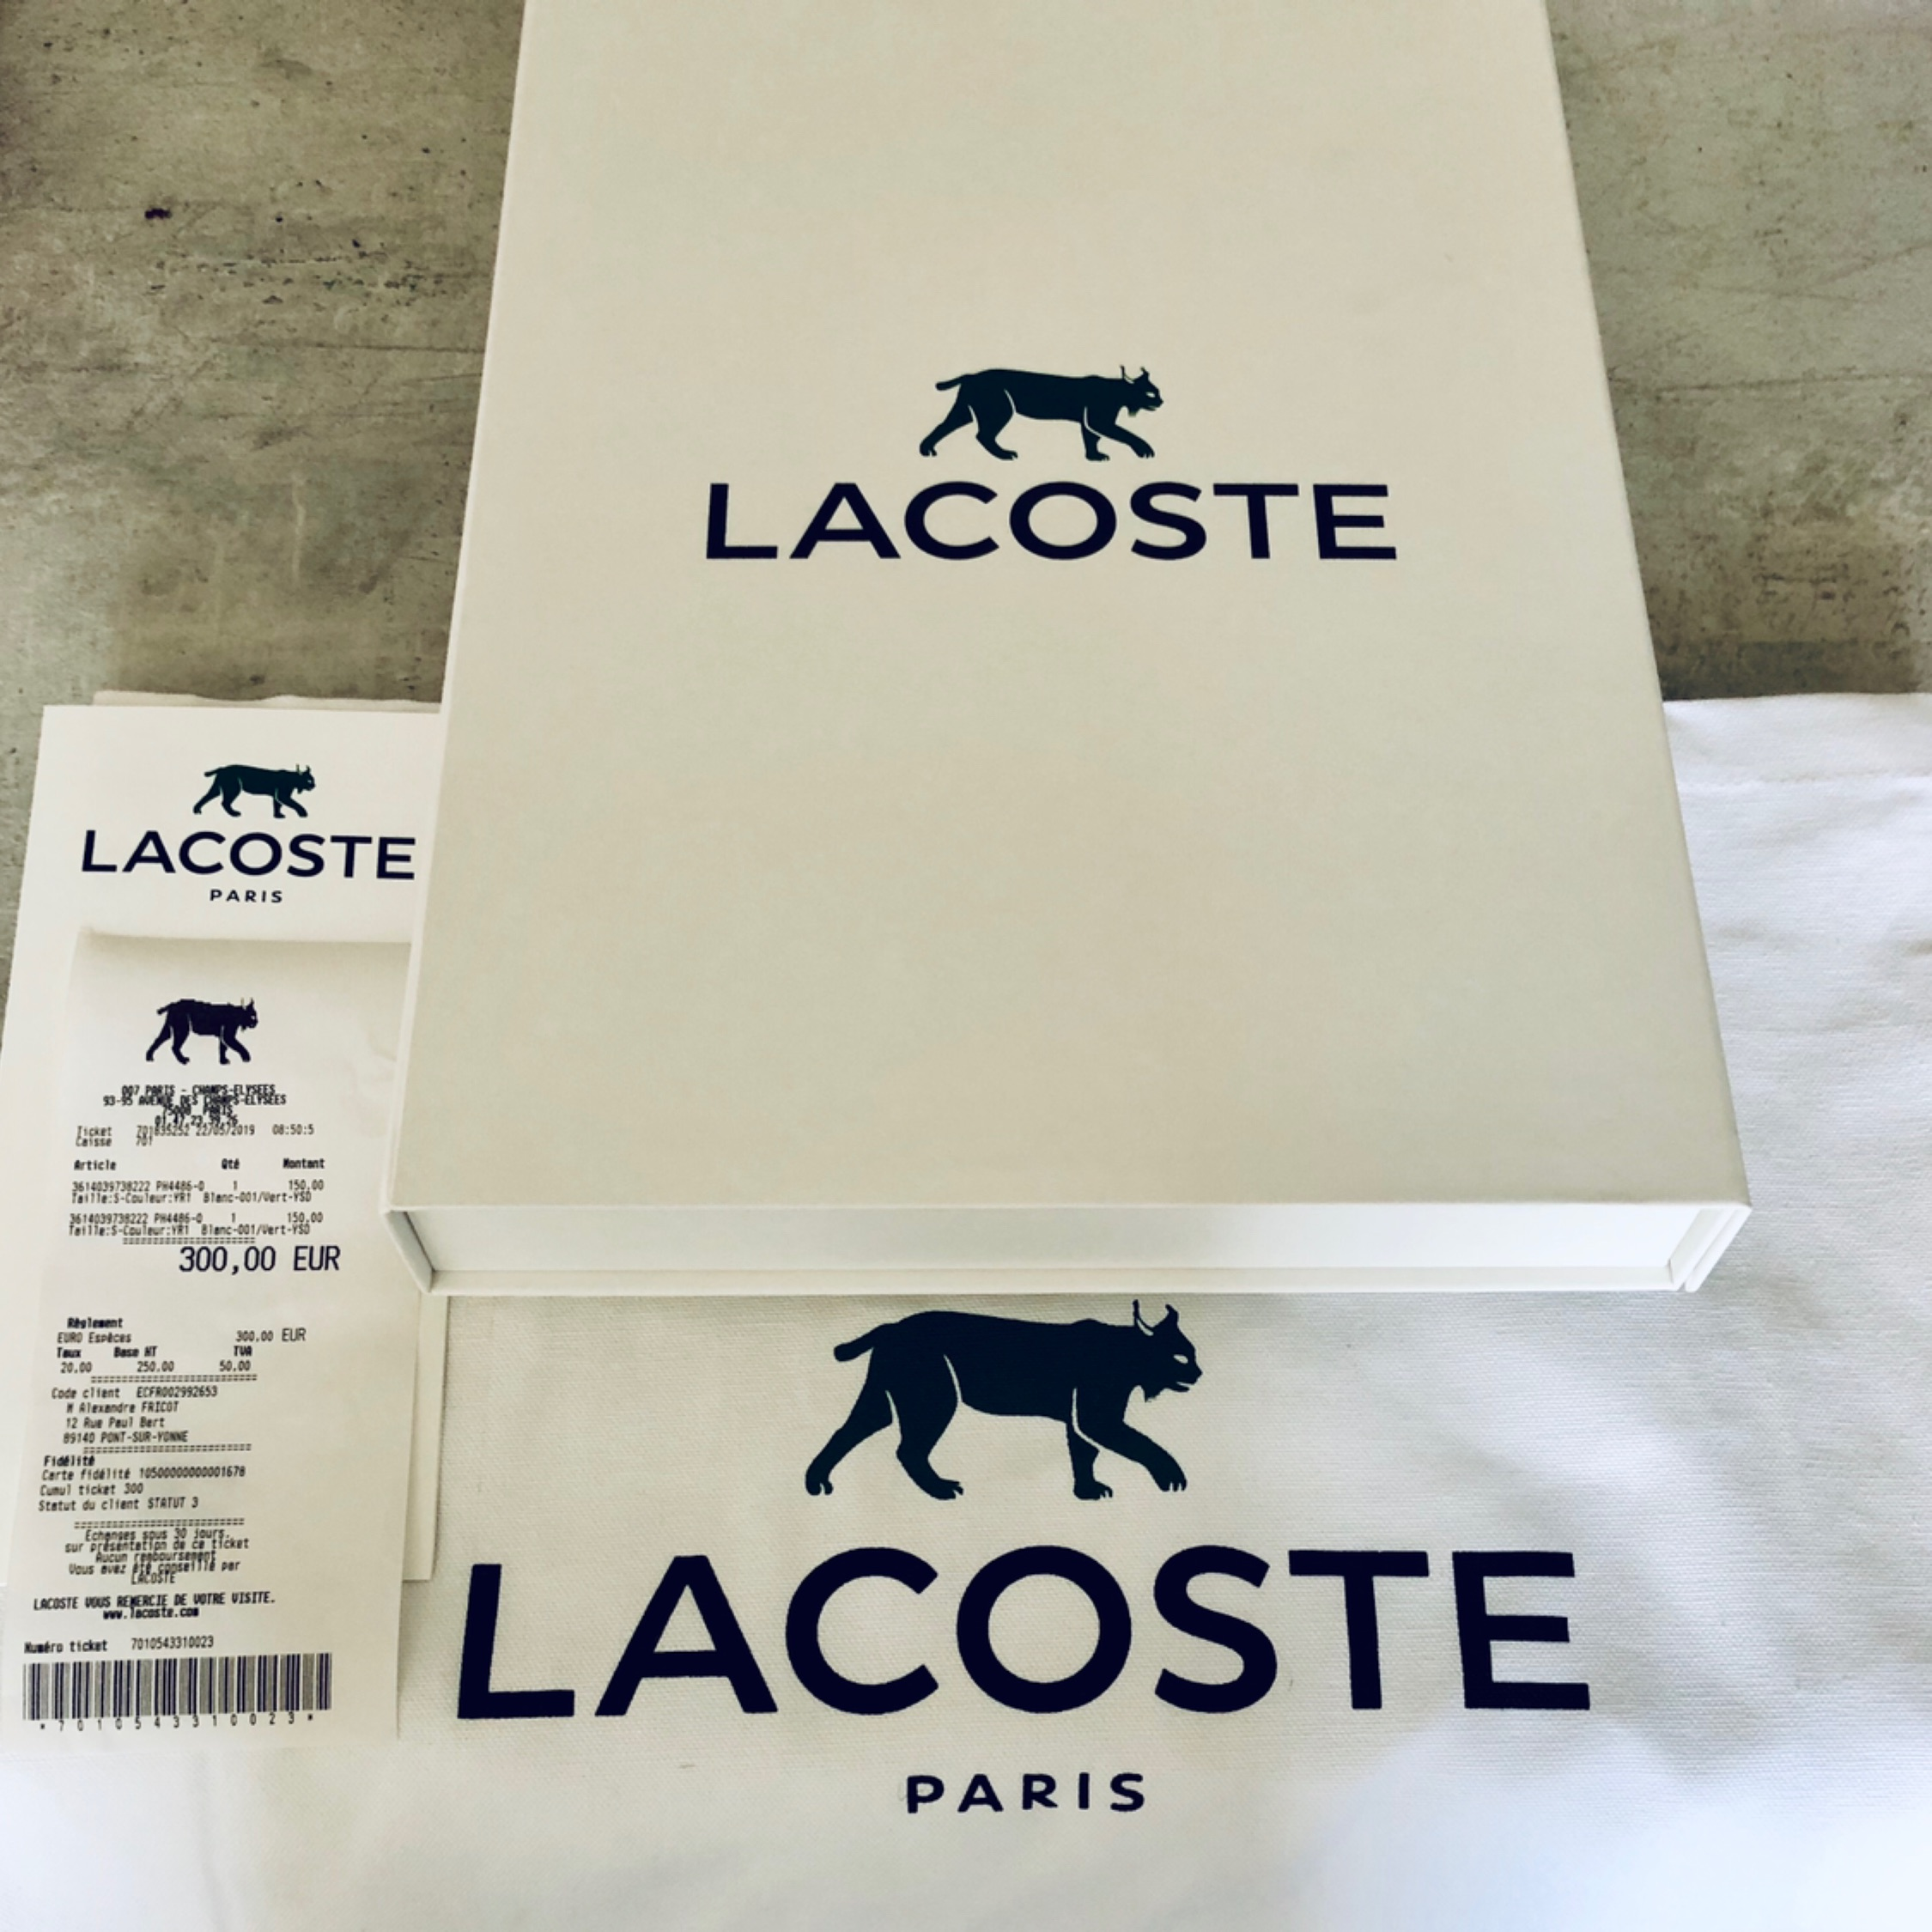 Lacoste 2019 Save Polo Our Species TKJcul3F1